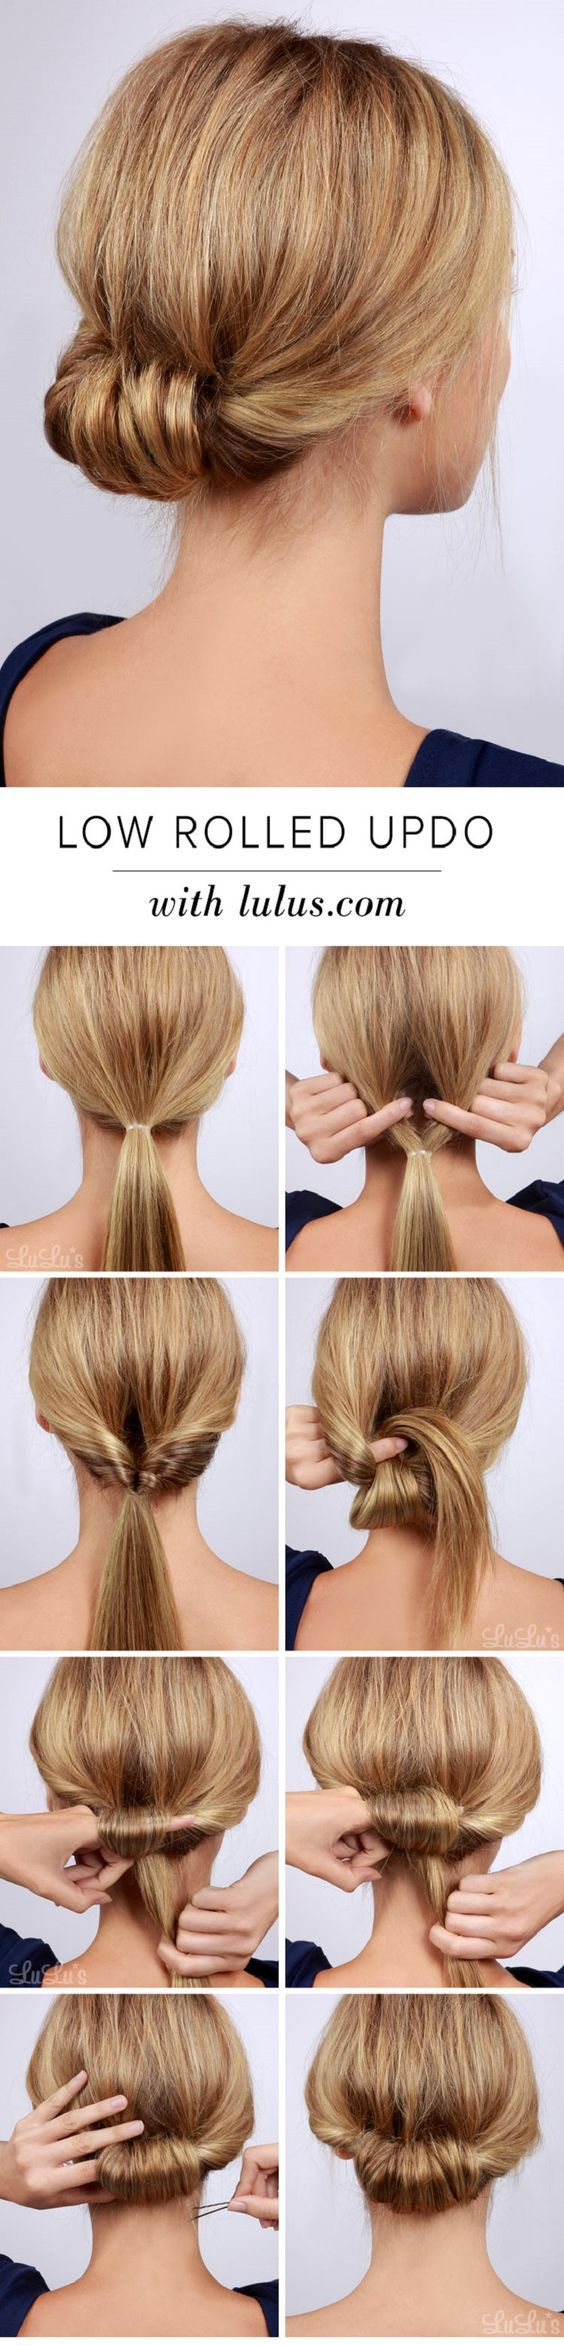 25 Stylish And Appropriate Hairstyles For Work   Page 3 Of 3   Trend To Wear